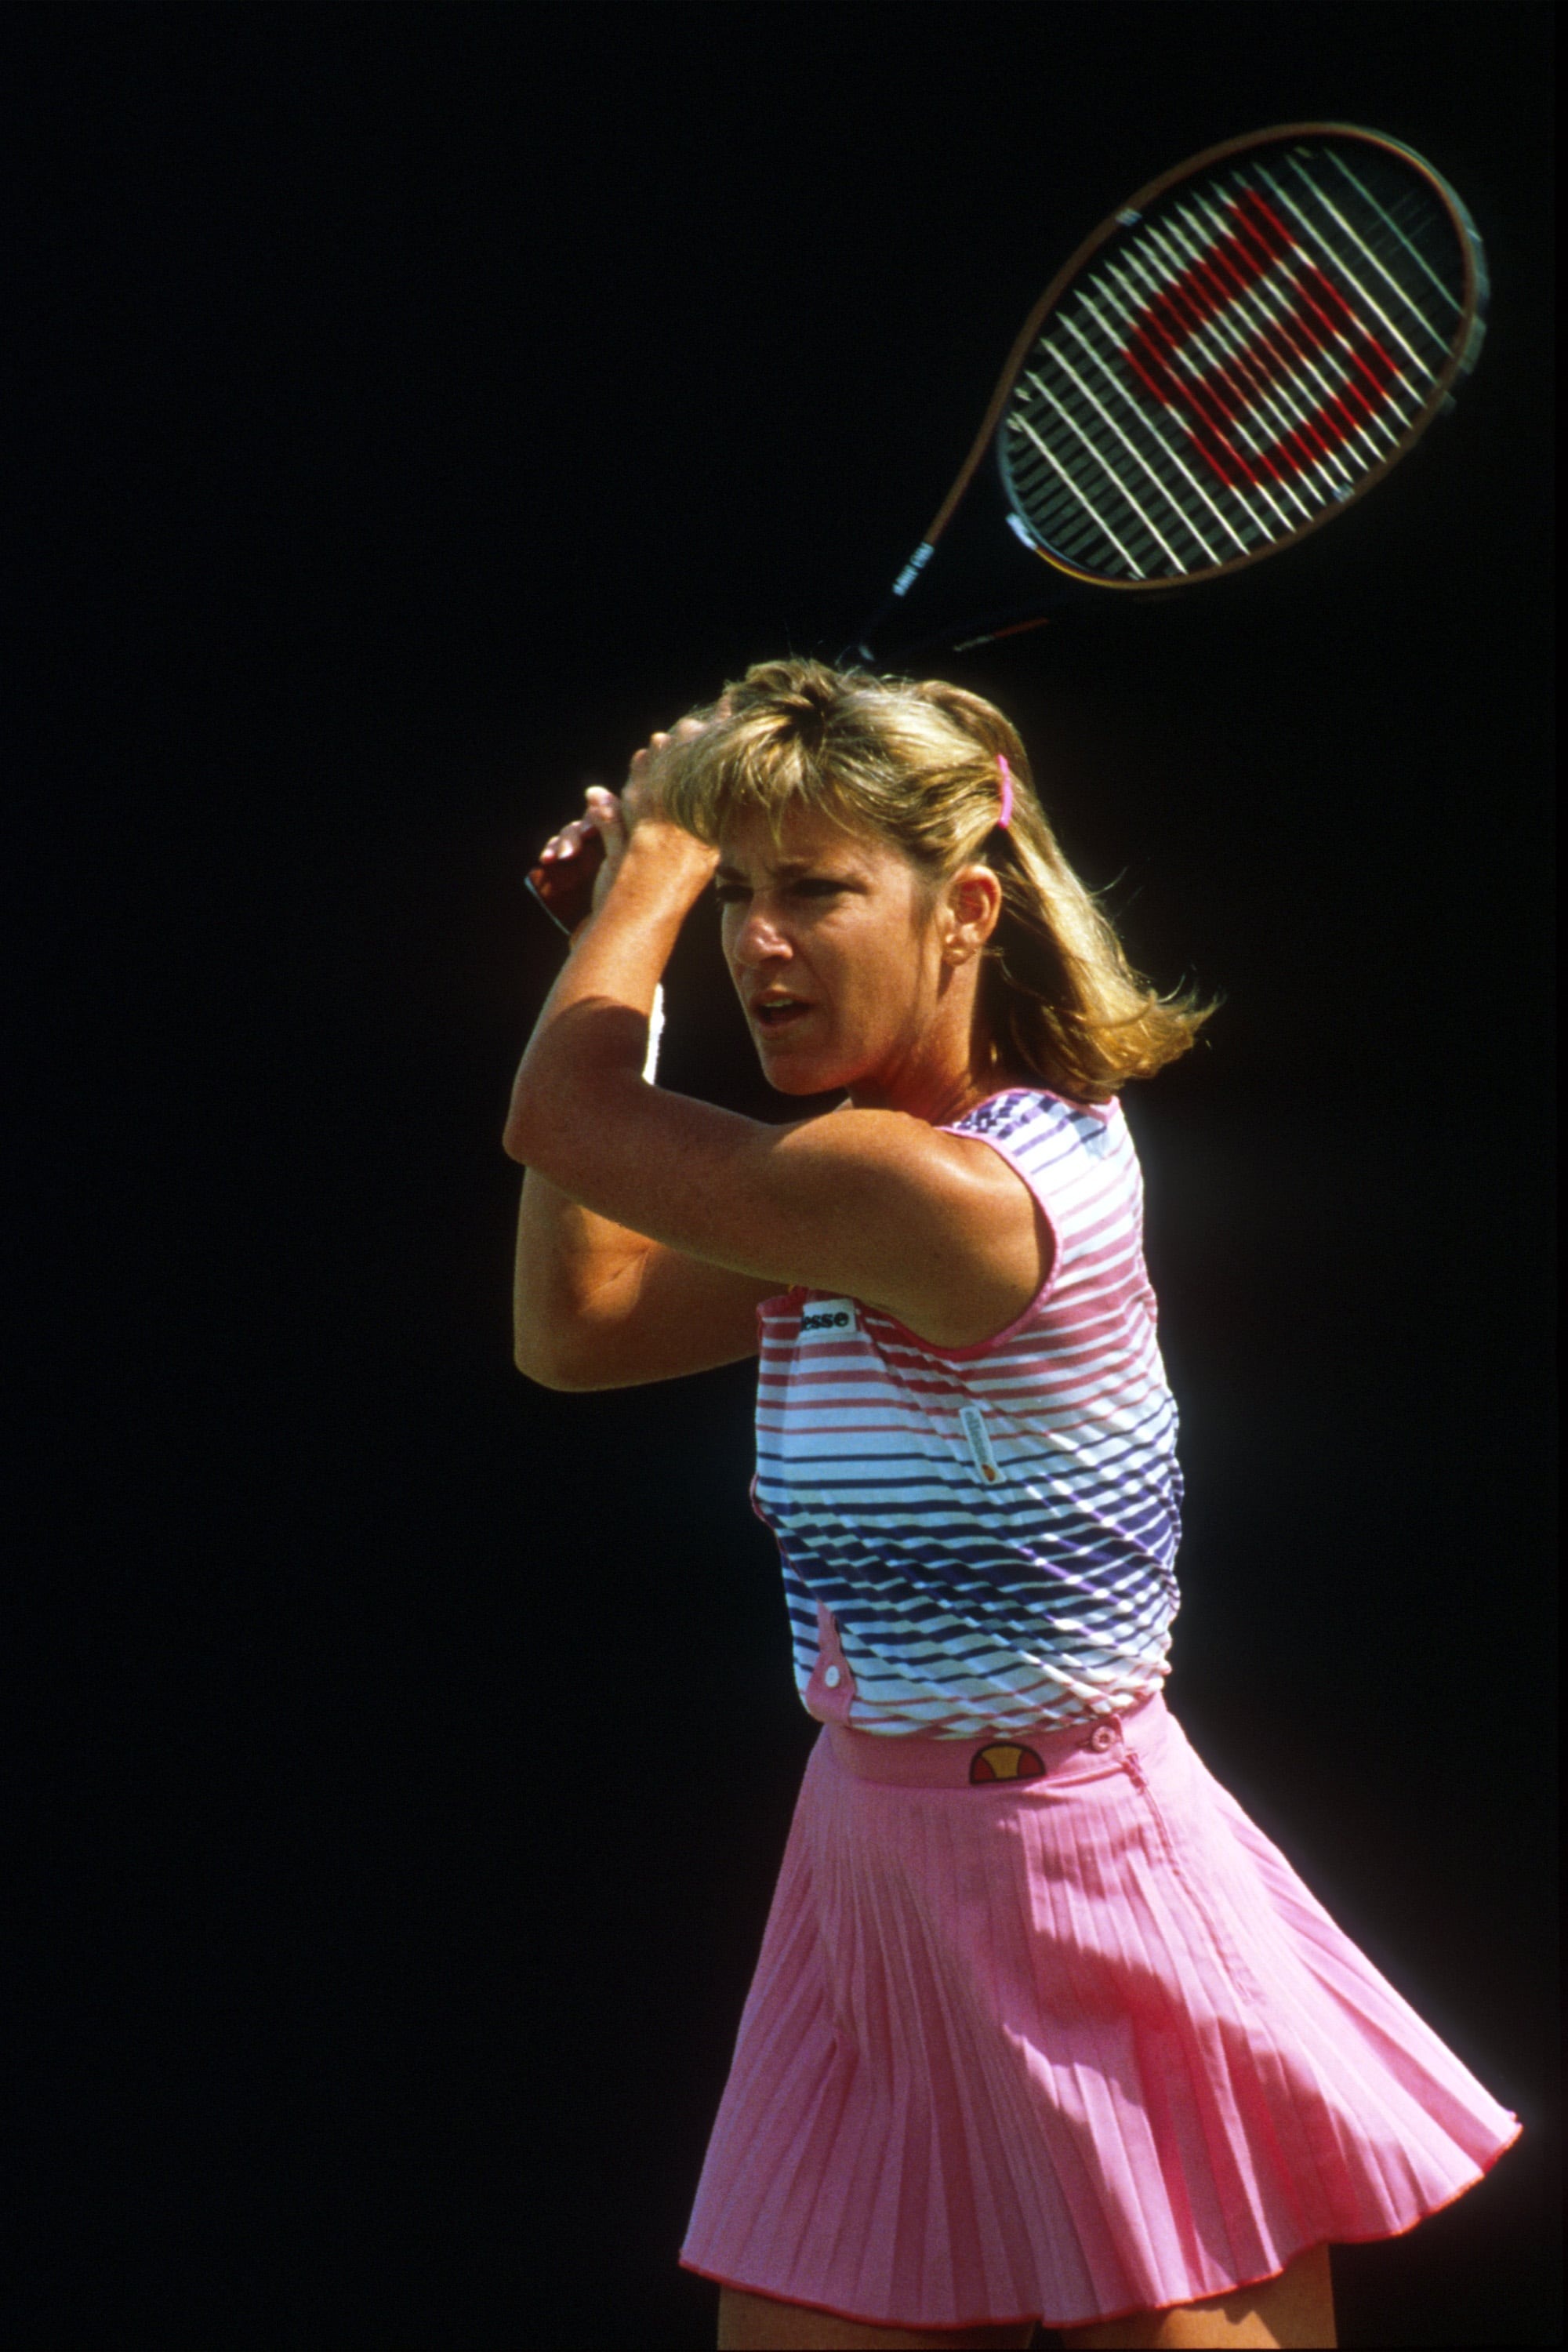 "Christine ""Chris"" Evert,  the former World No. 1 professional tennis player, displayed her colorful tennis style at the Lipton competition in 1988."